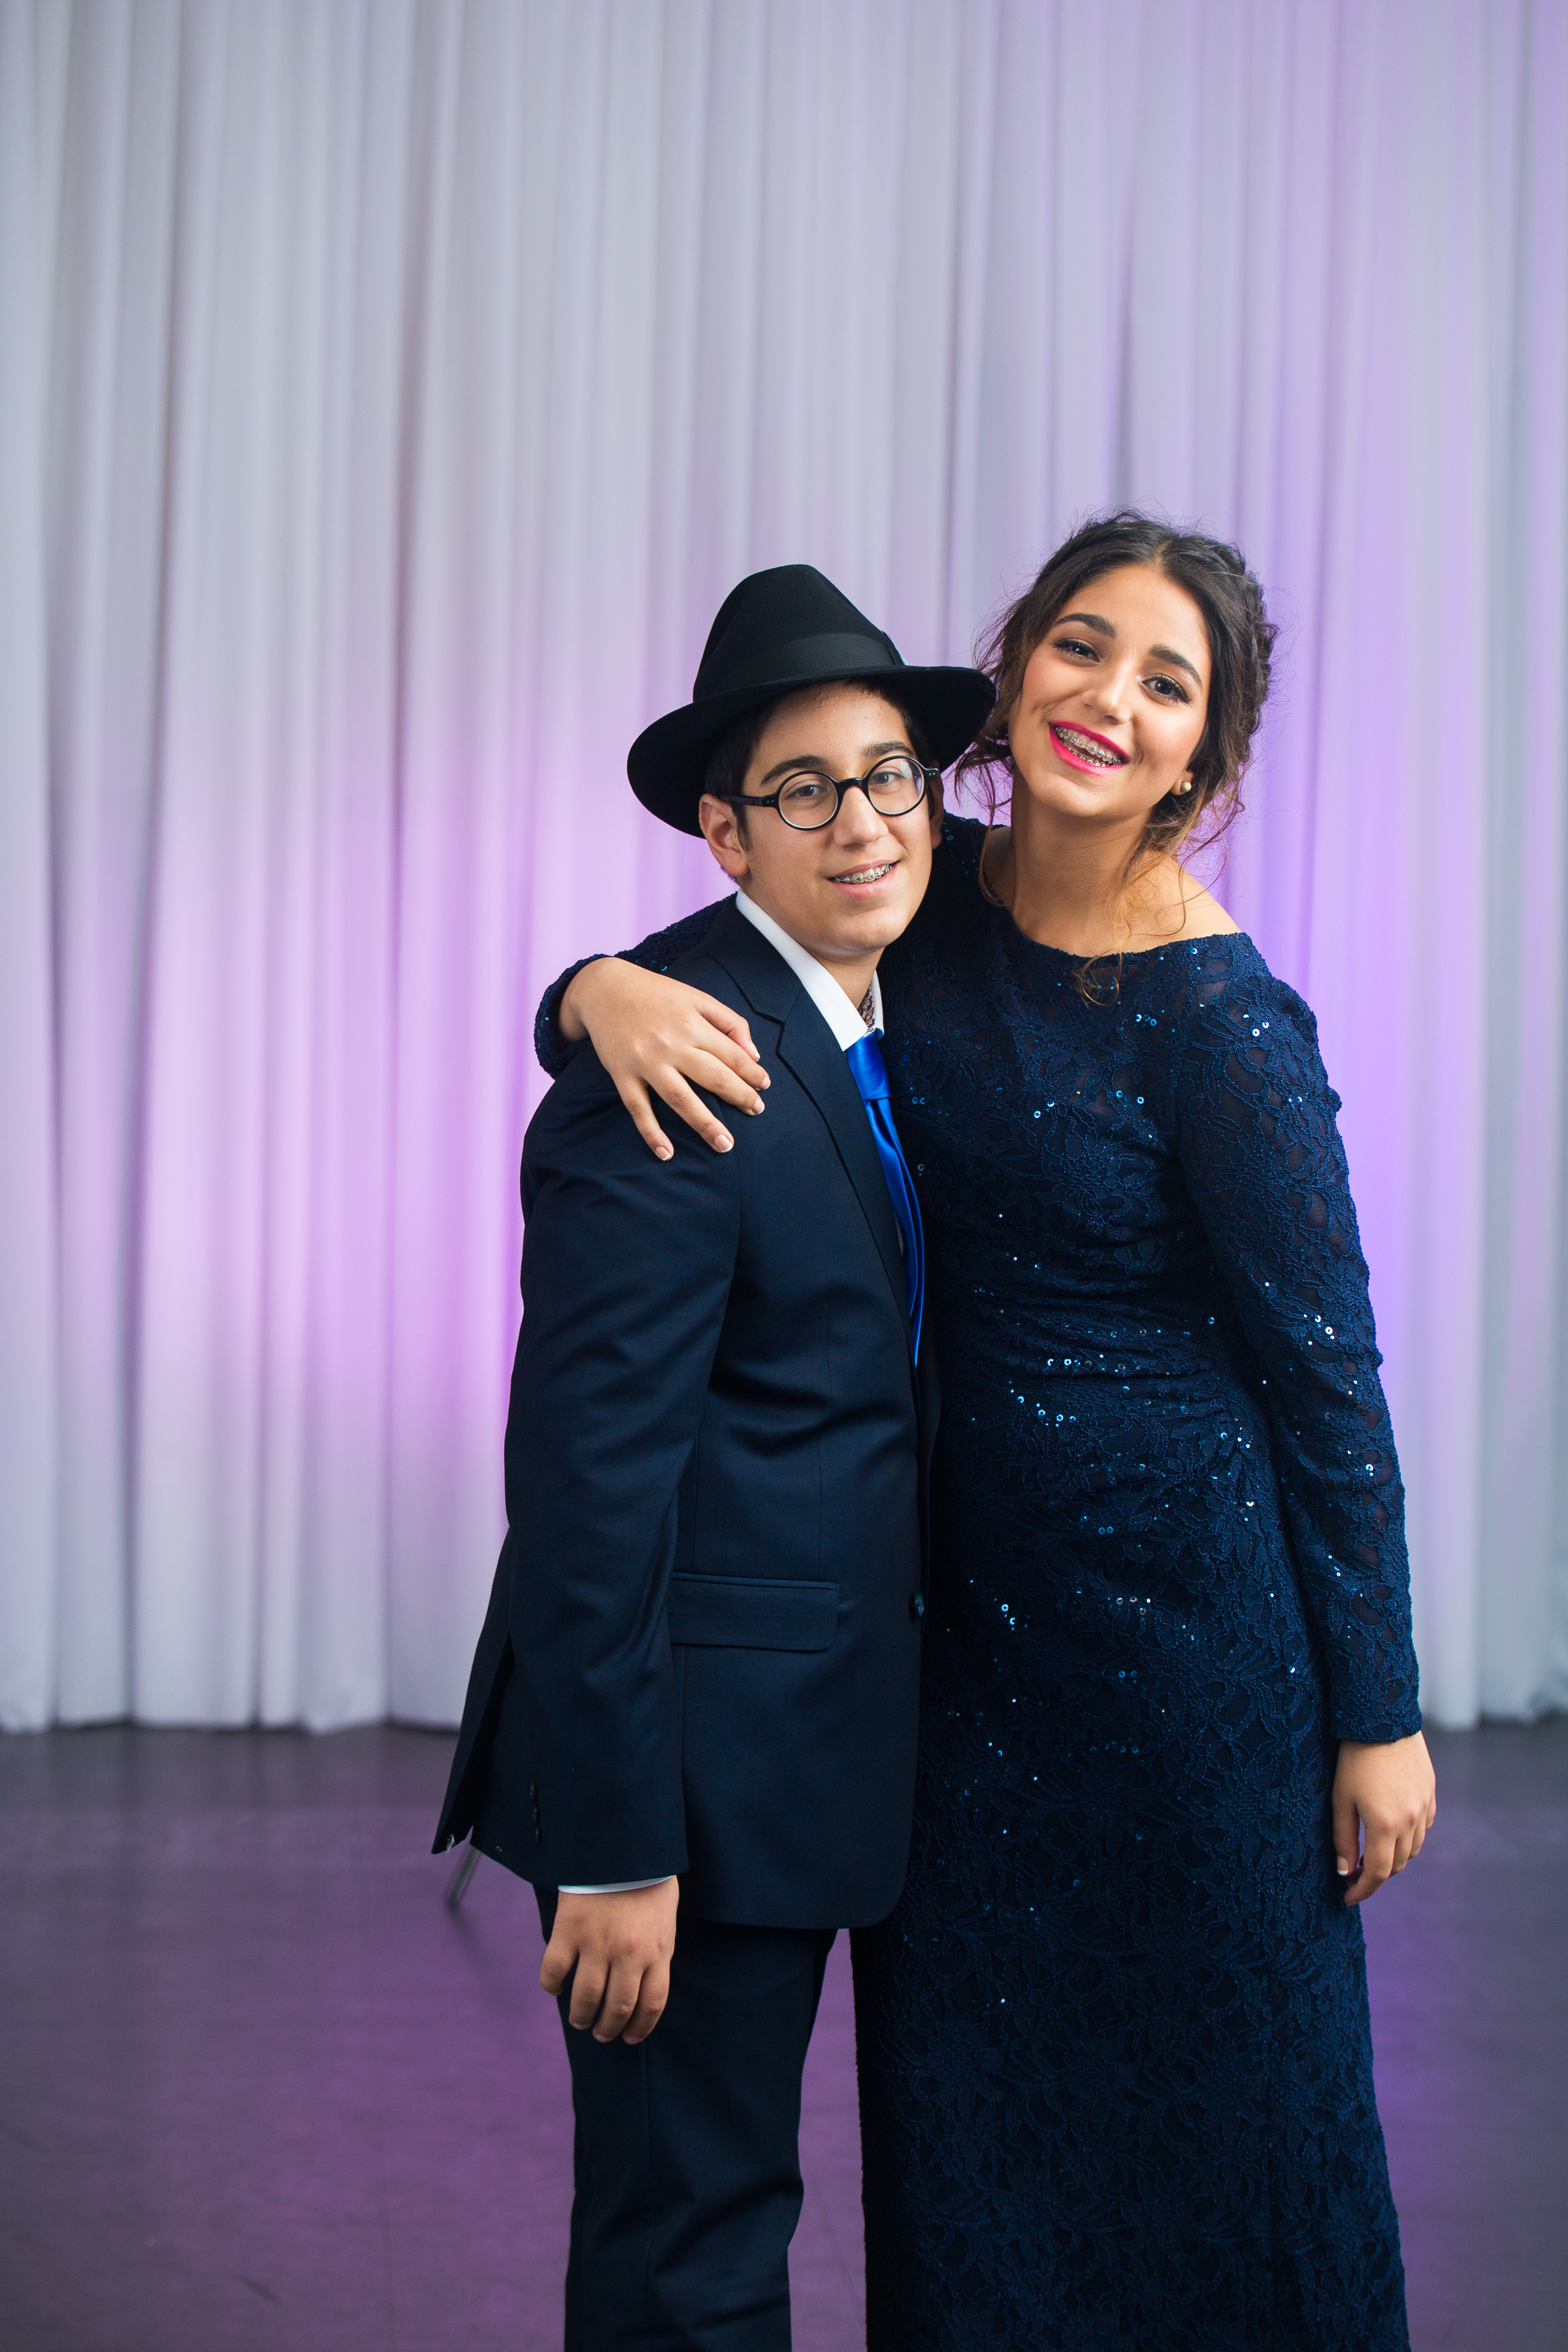 Shloime Dahan Bar Mitzvah - Eliau Piha studio photography-0072.jpg